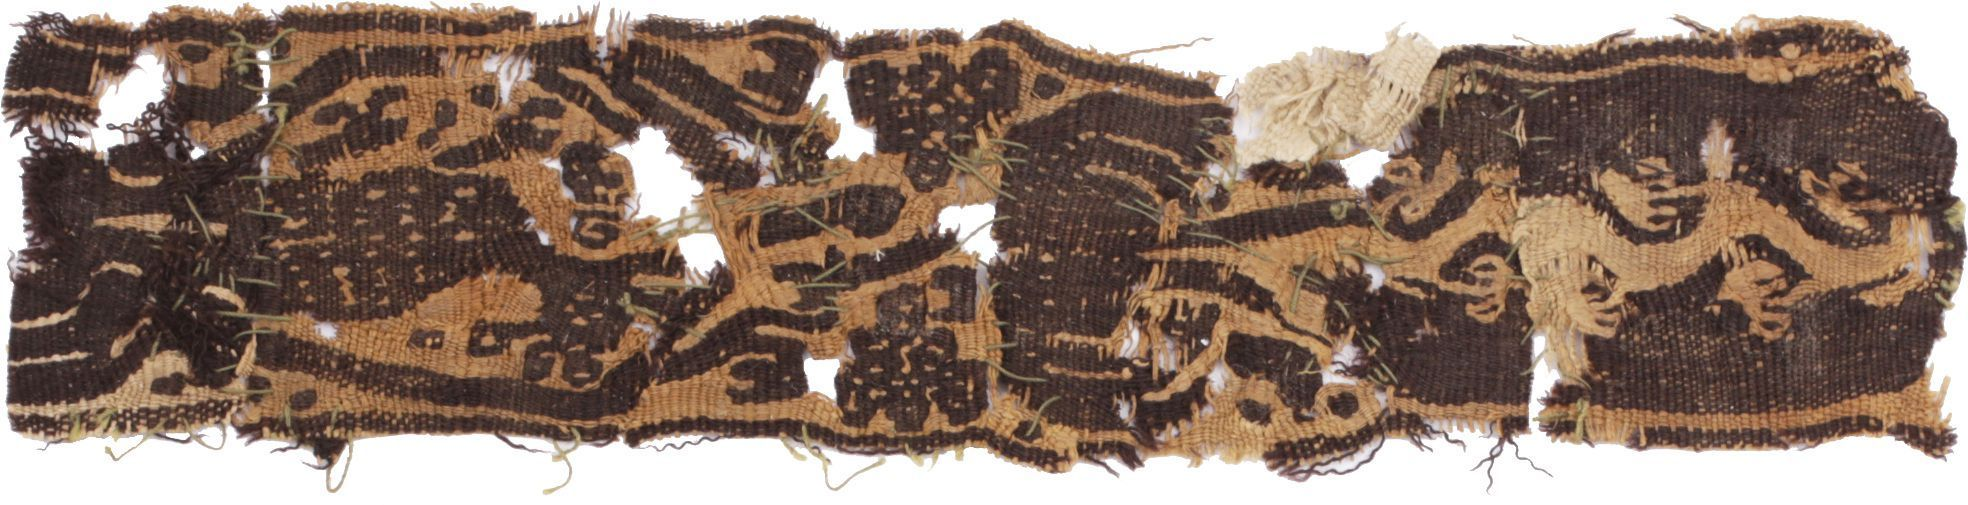 EGYPTIAN COPTIC CLOTH, 350-500 AD - Fagan Arms